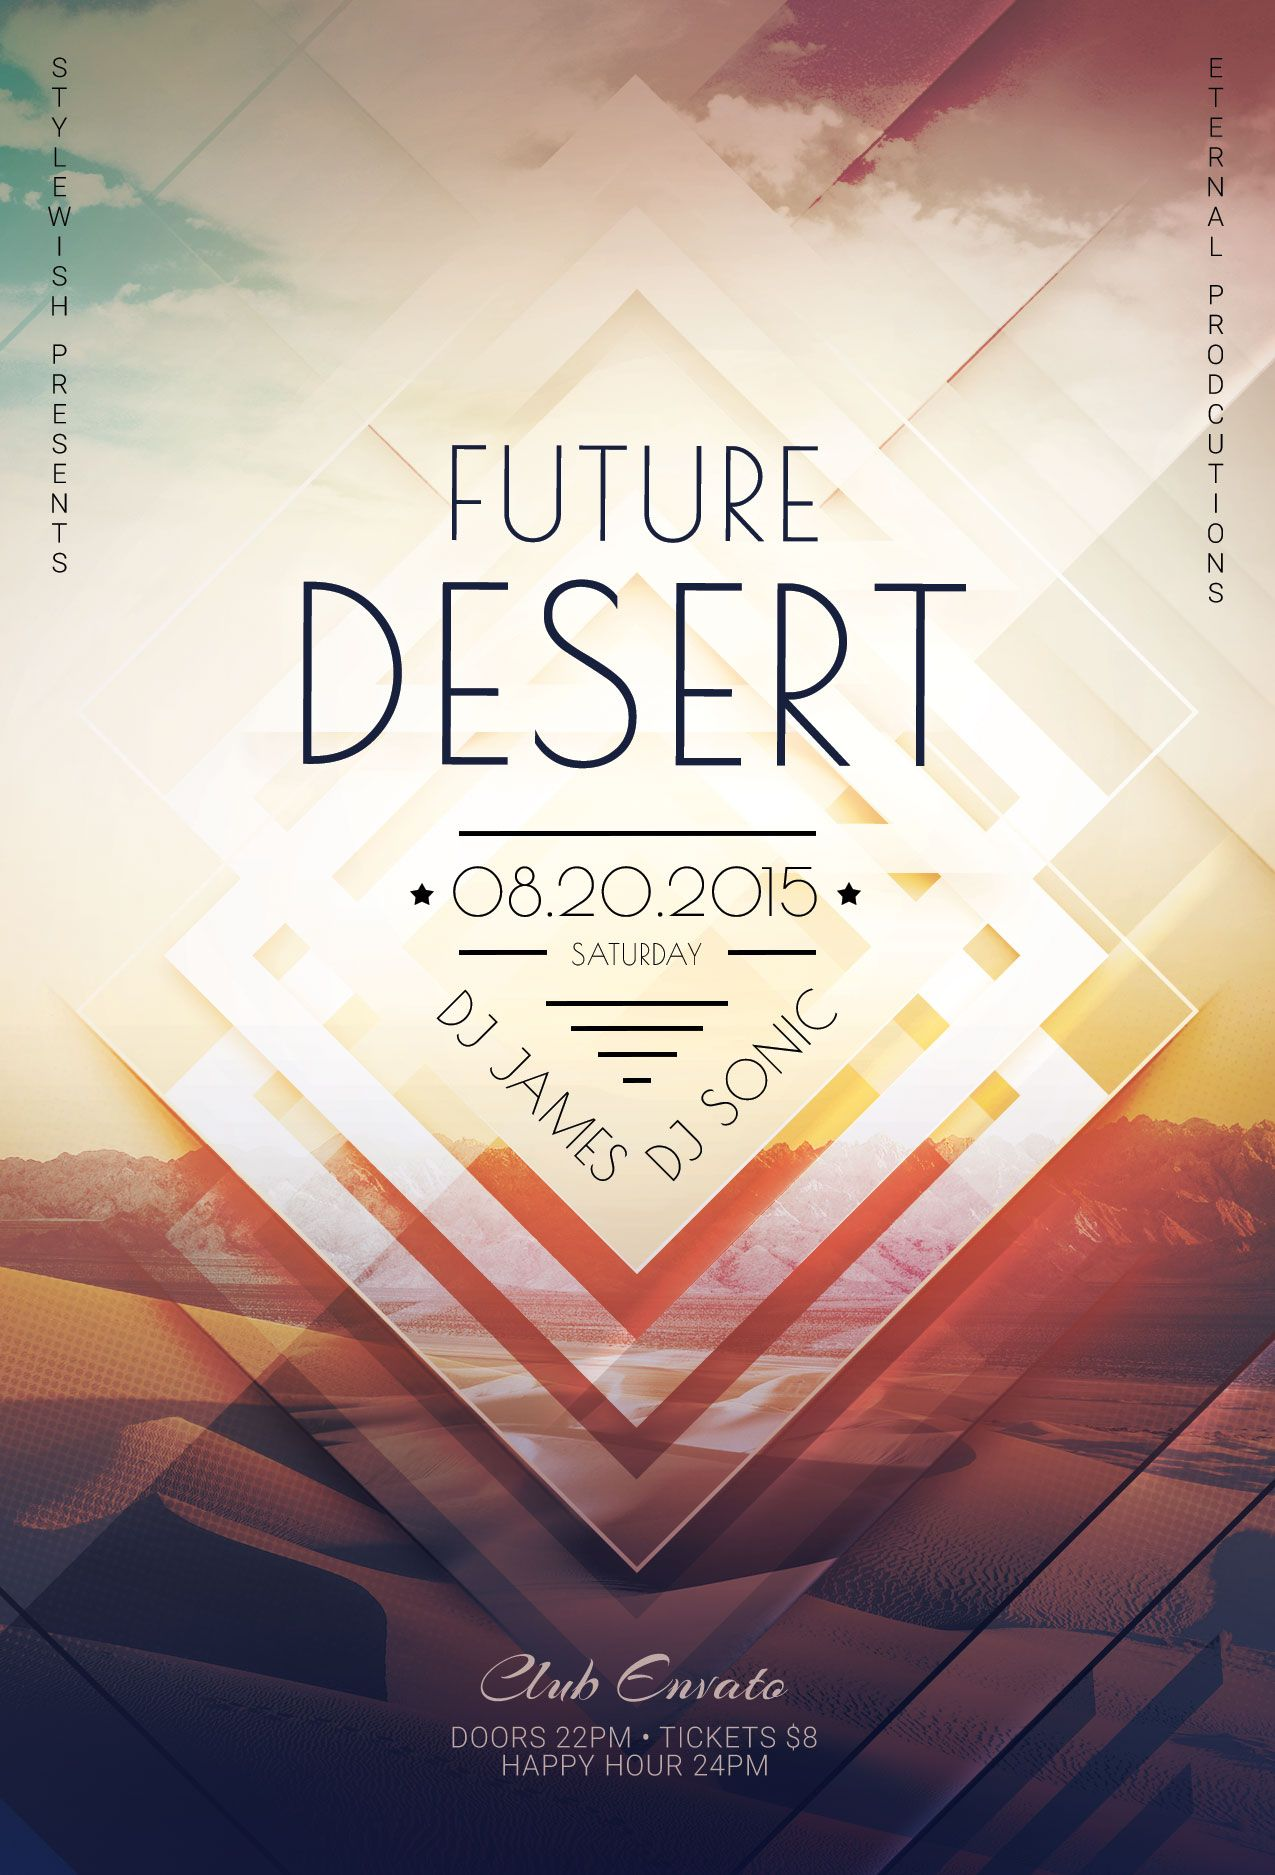 future desert flyer template download psd file 6 party poster